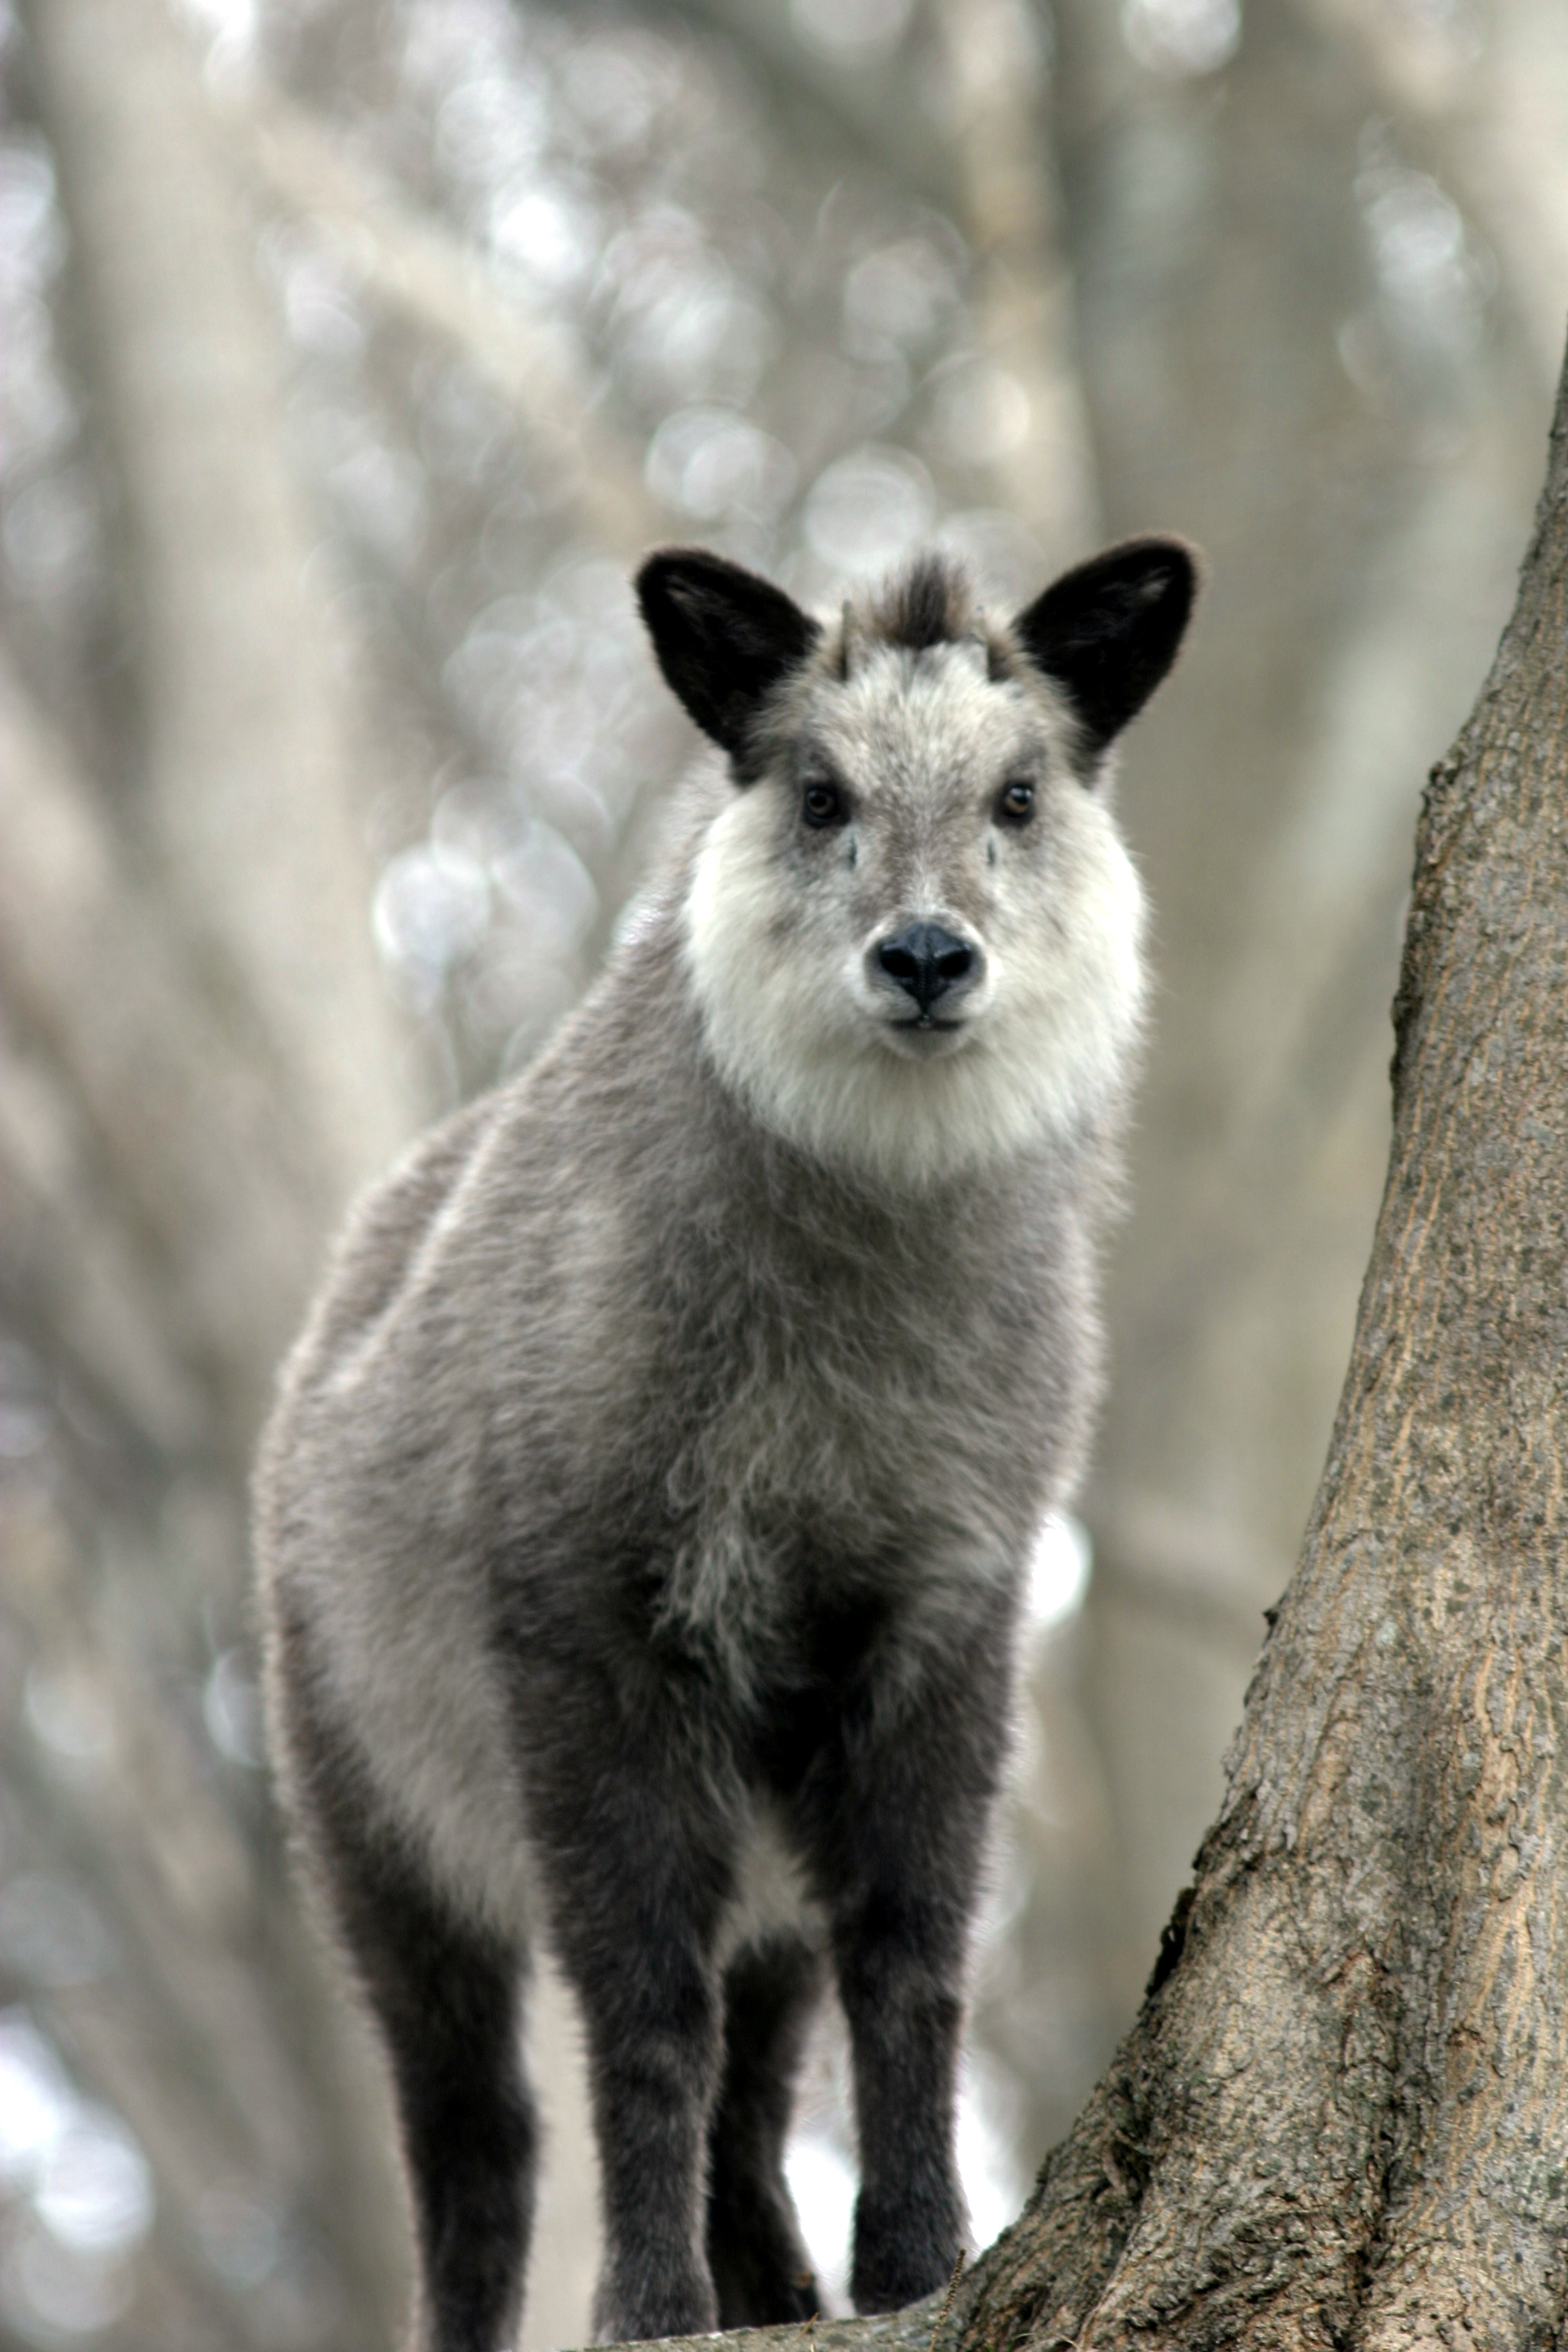 https://upload.wikimedia.org/wikipedia/commons/f/ff/Japanese_Serow_Wakinosowa_Japan.JPG